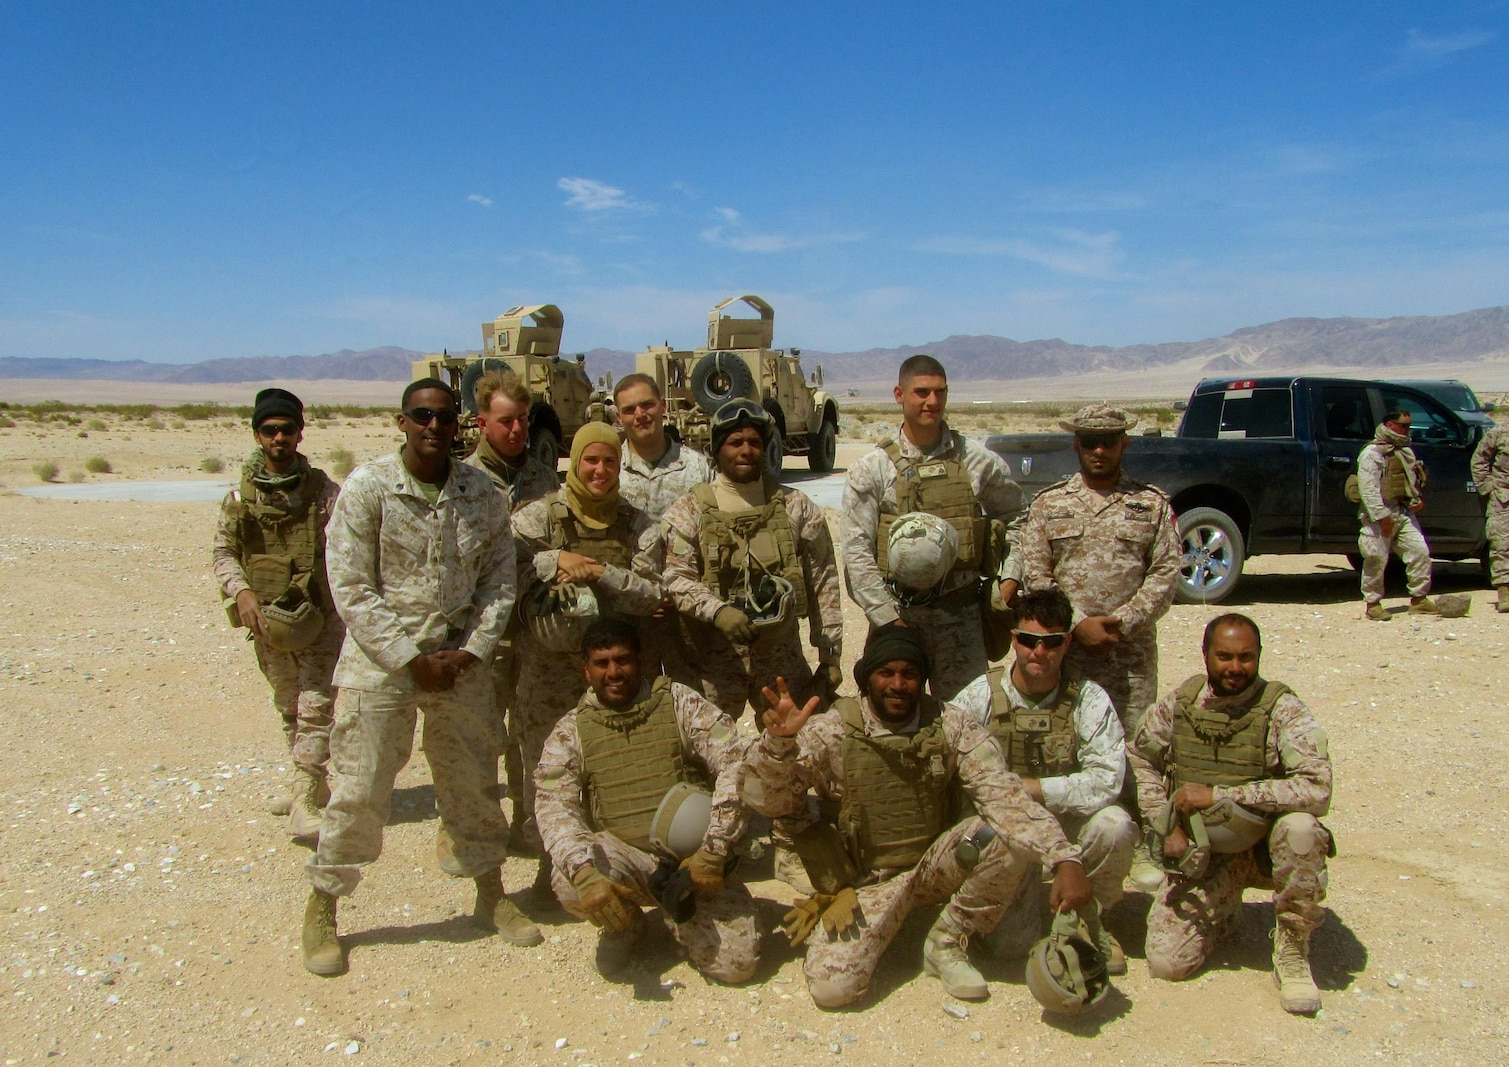 (CLB-7 Marines from top left) Cpl James Heres, Cpl Matthew Mottishaw, Sgt Kenneth Sullivan, 1stLt Tiffany Aguiar, and Cpl Alfredo Limon on Day 2 of Helicopter Support Team Training with the United Arab Emirates Presidential Guard.